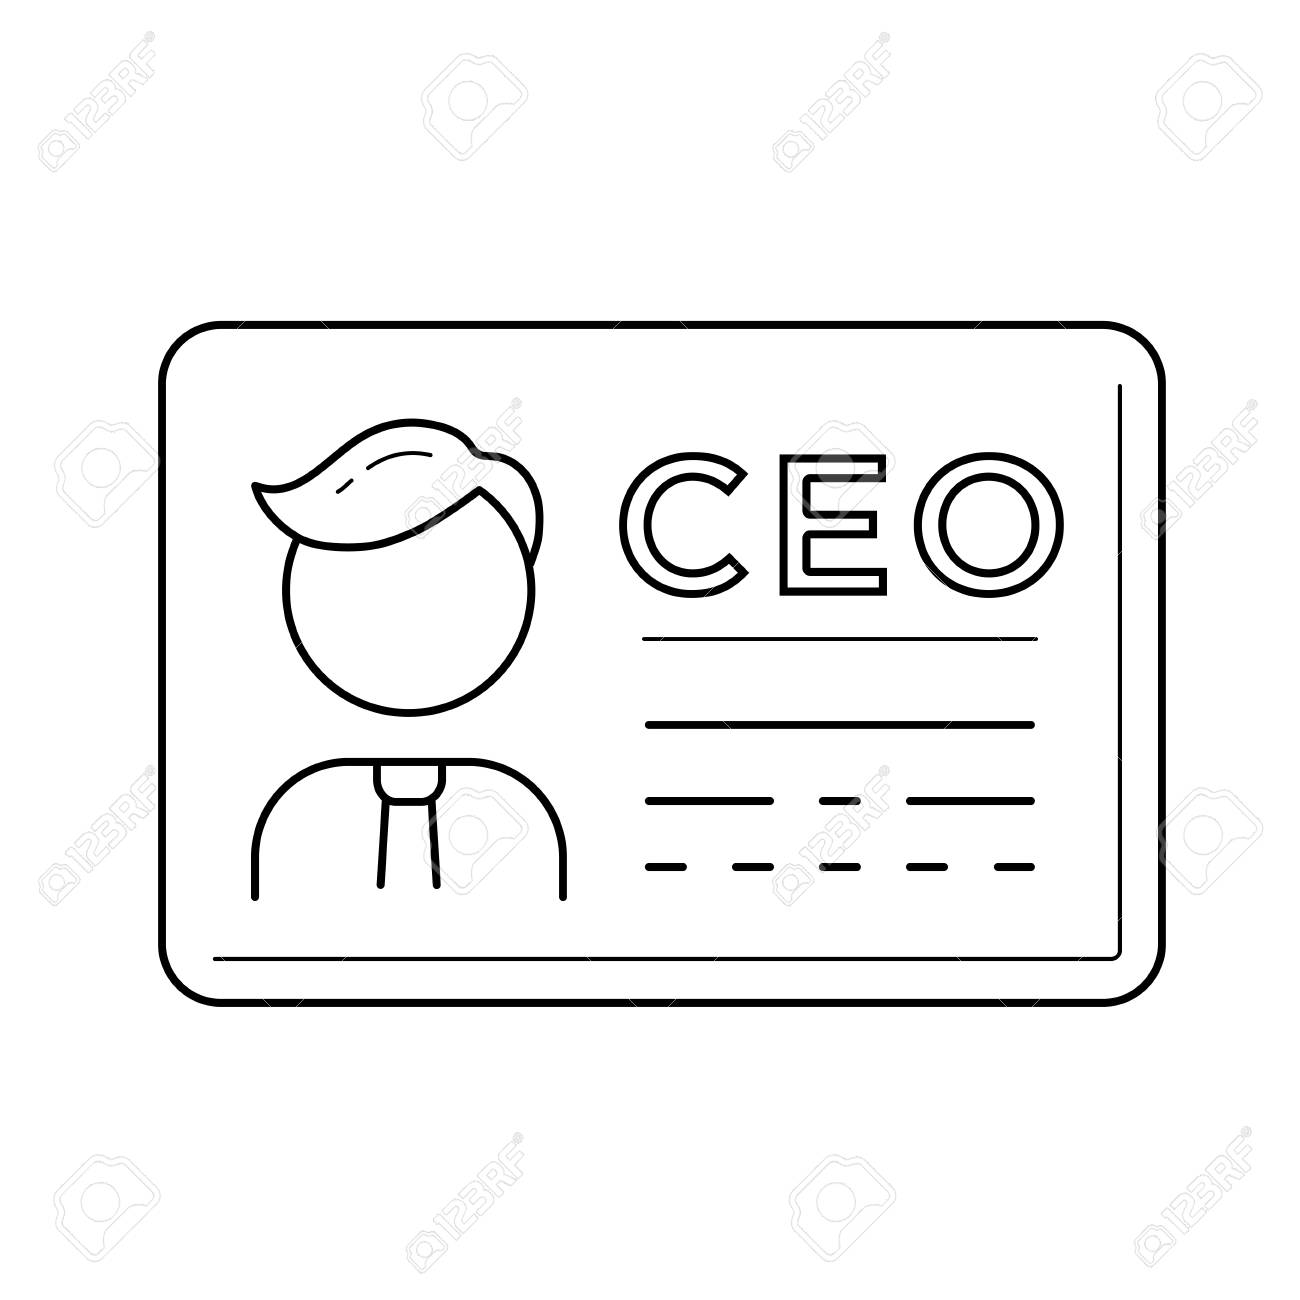 Ceo business card vector line icon isolated on white background ceo business card vector line icon isolated on white background chief executive officer line icon reheart Images